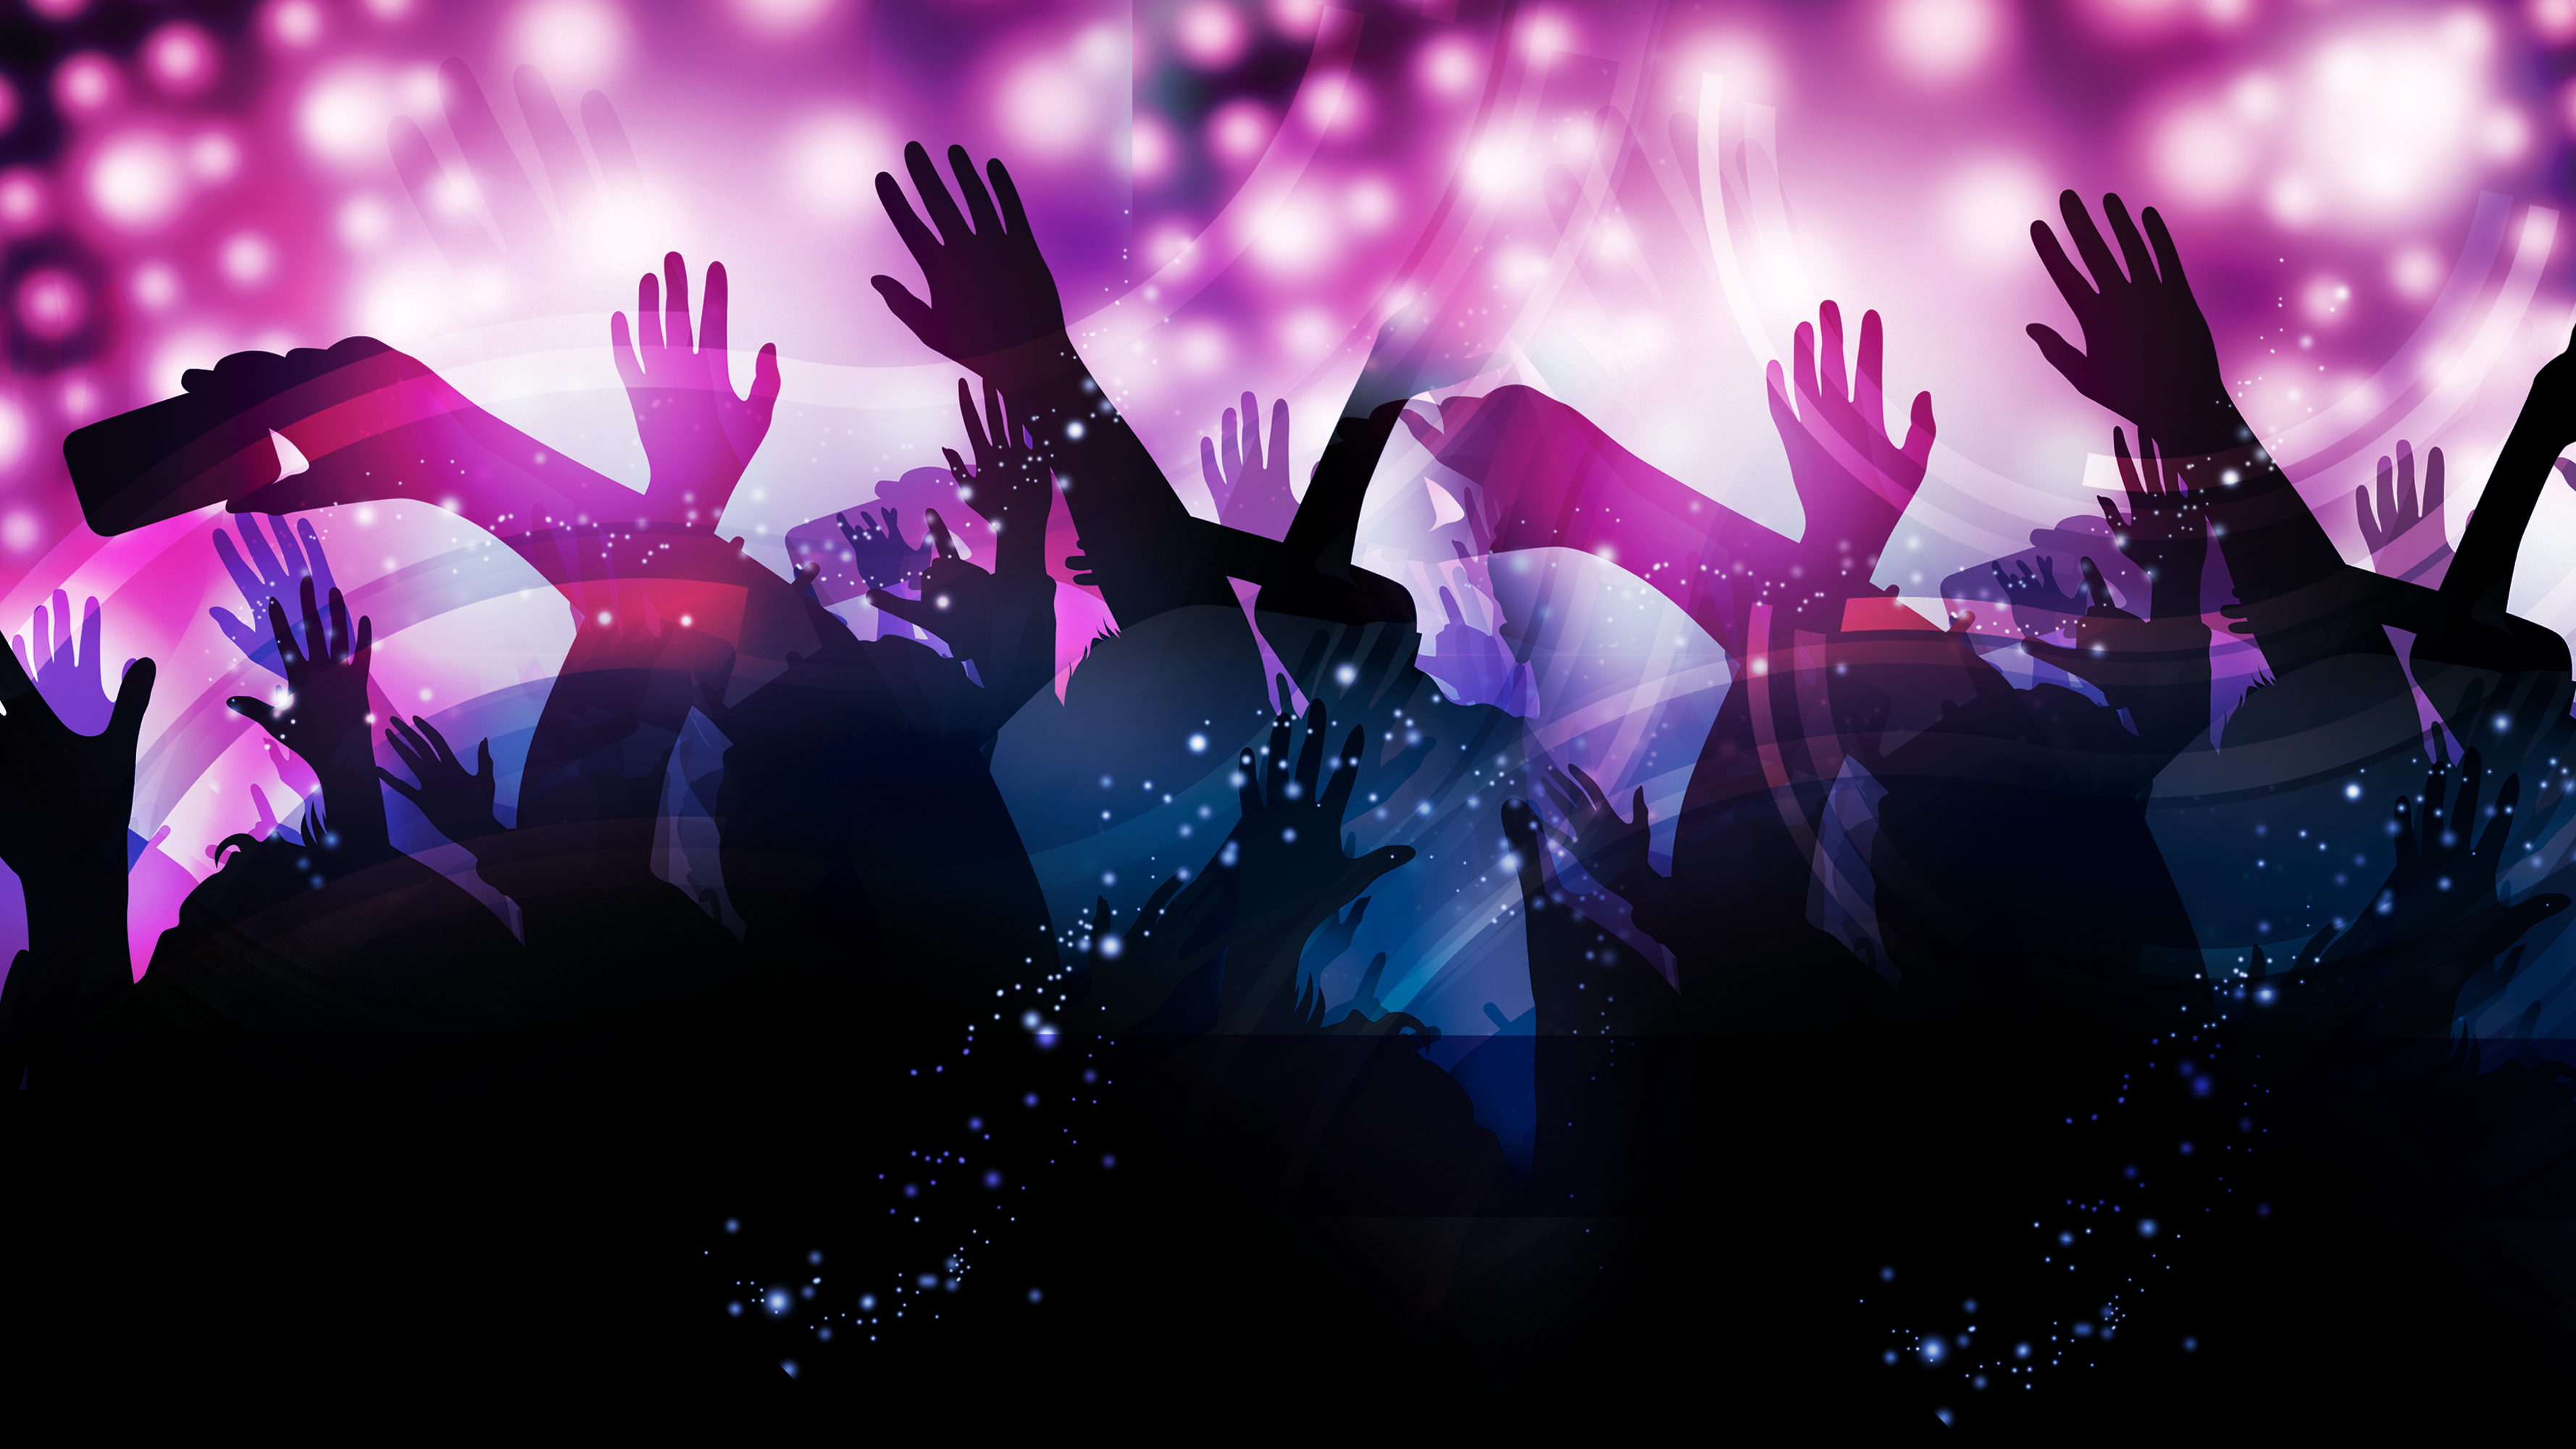 dynamic melody dancing hands advertising background